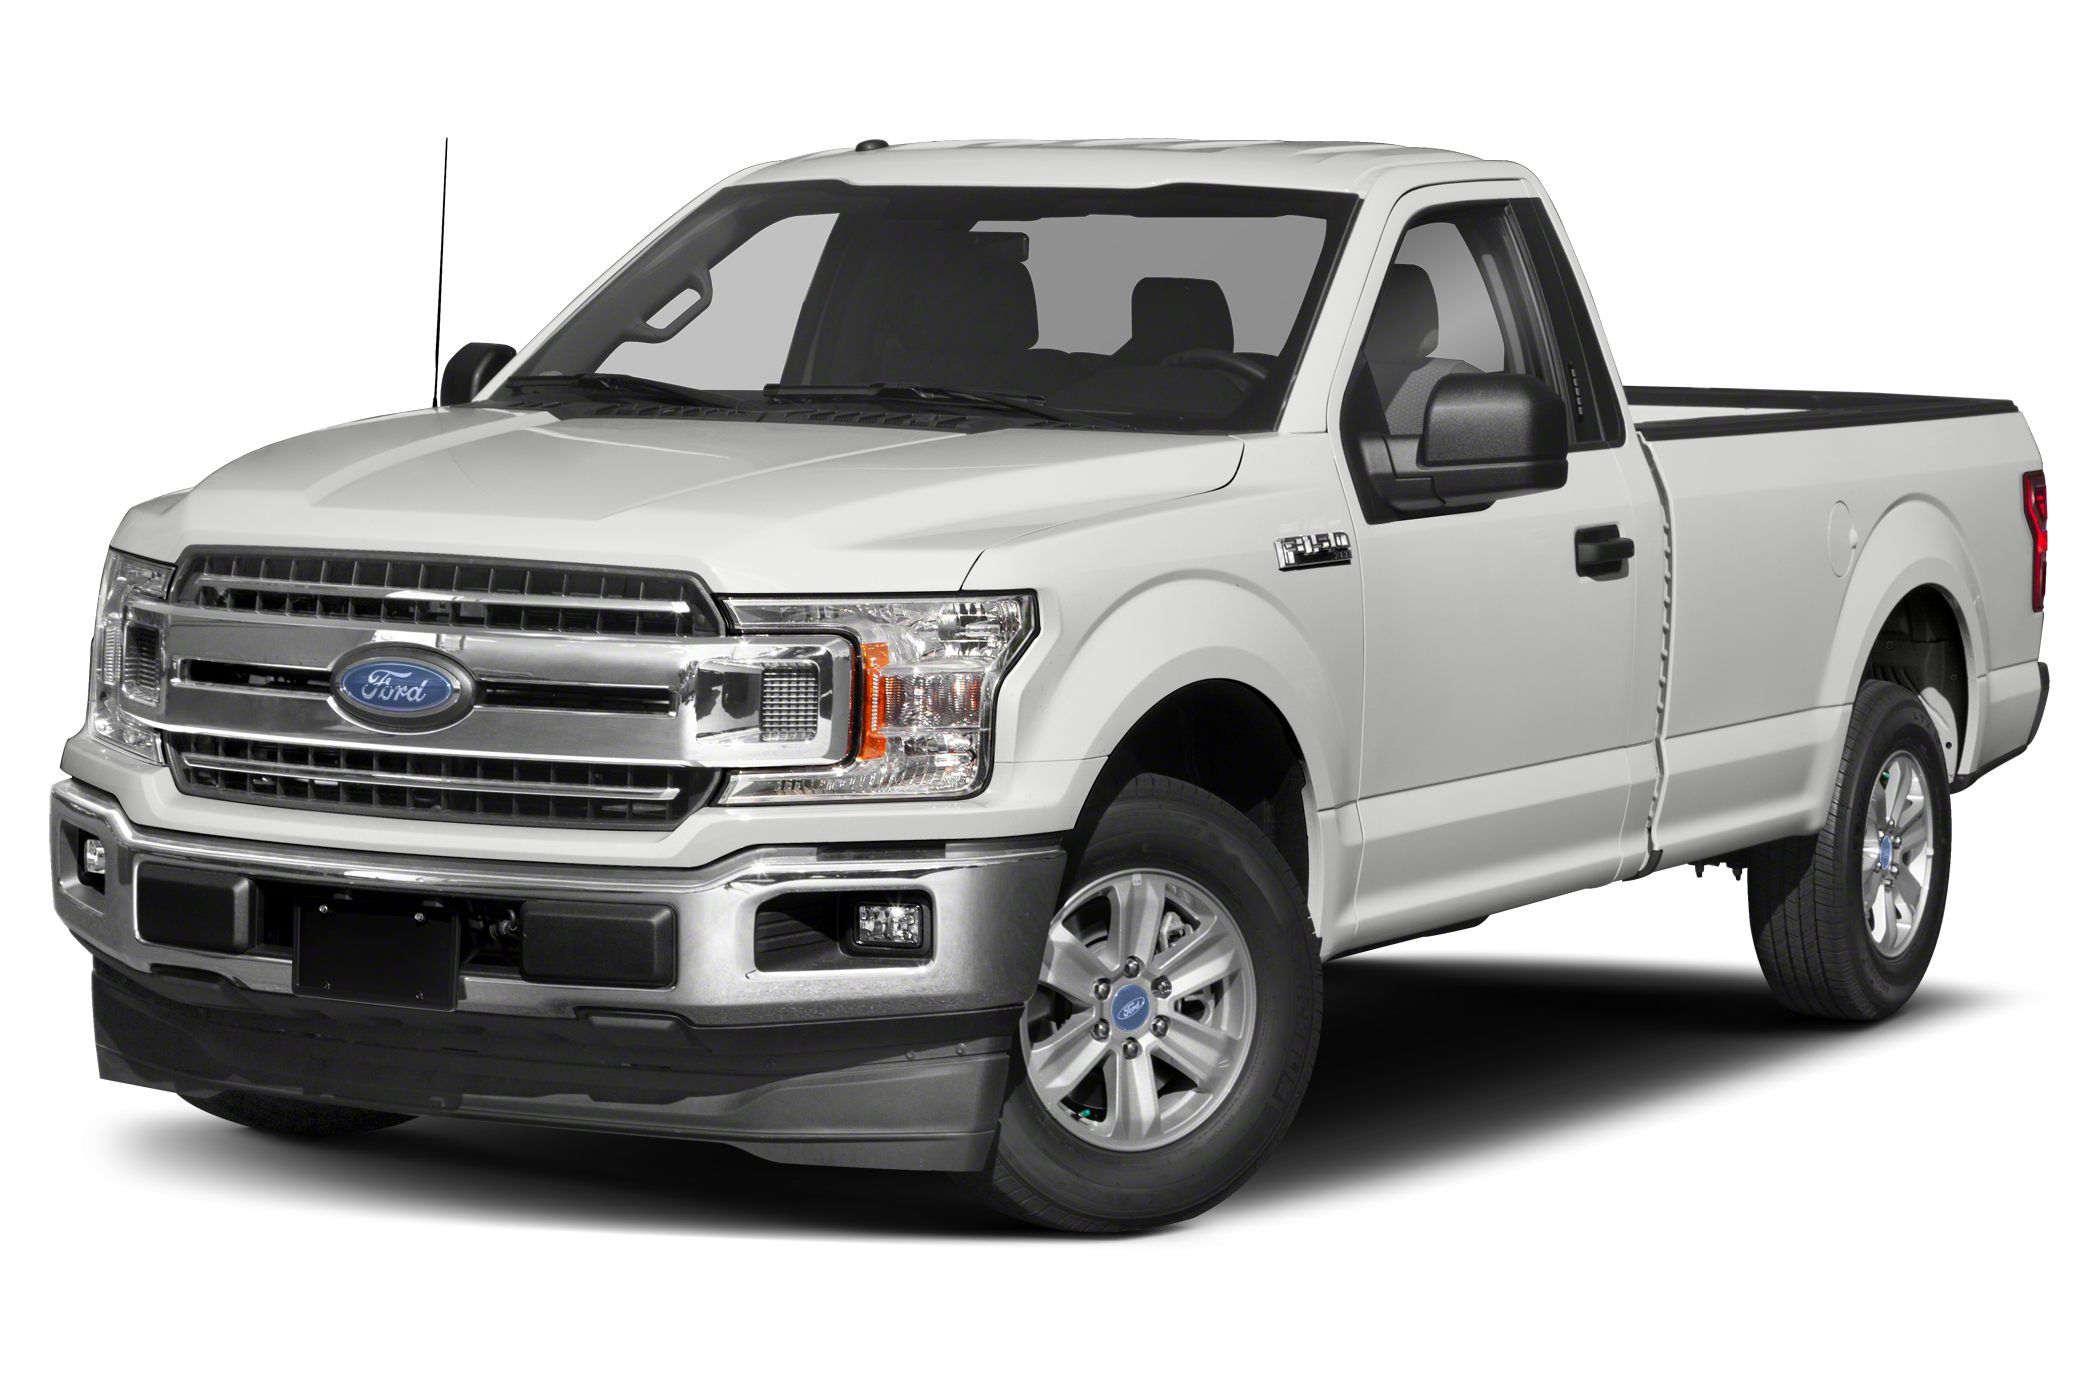 2020 Ford F-150 XLT 4x2 Regular Cab Styleside 8 ft. box 141 in. WB